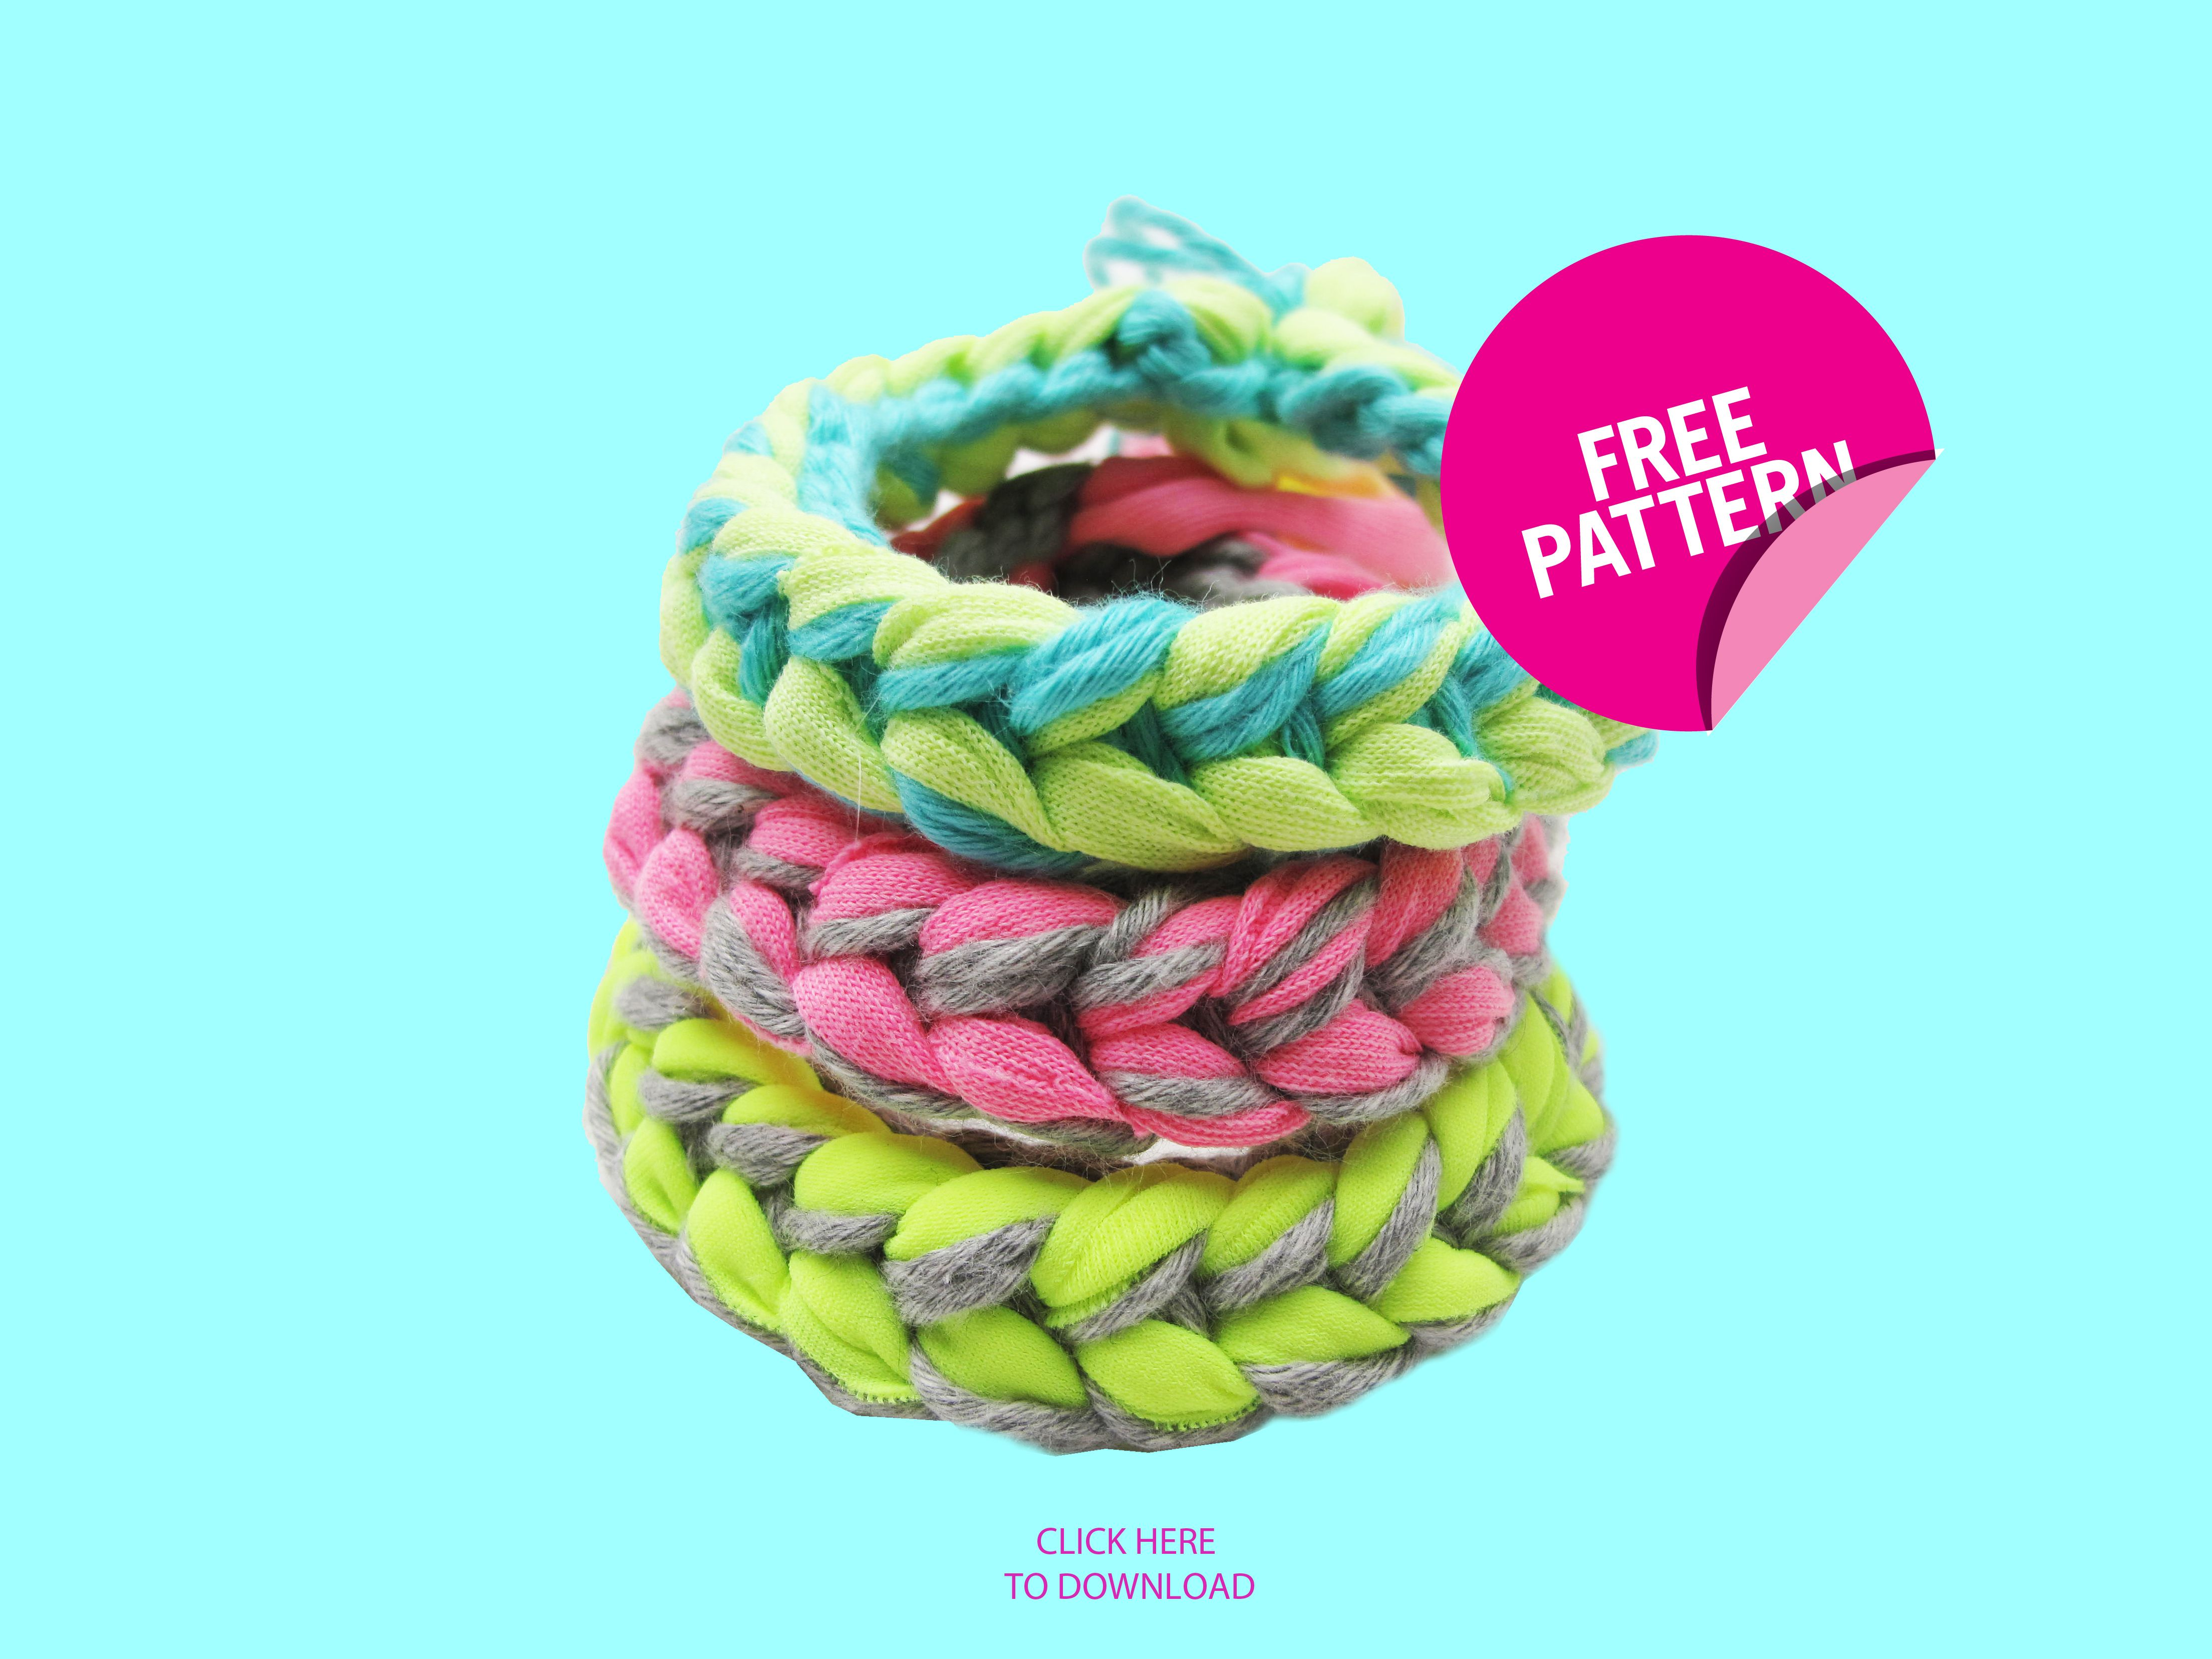 Nina rich bracelets i love the colors of these watgfestival my these easy knitted bracelets are a perfect summer project to do with my daughter i know that she will love knitting these in a whole rainbow of colors bankloansurffo Images